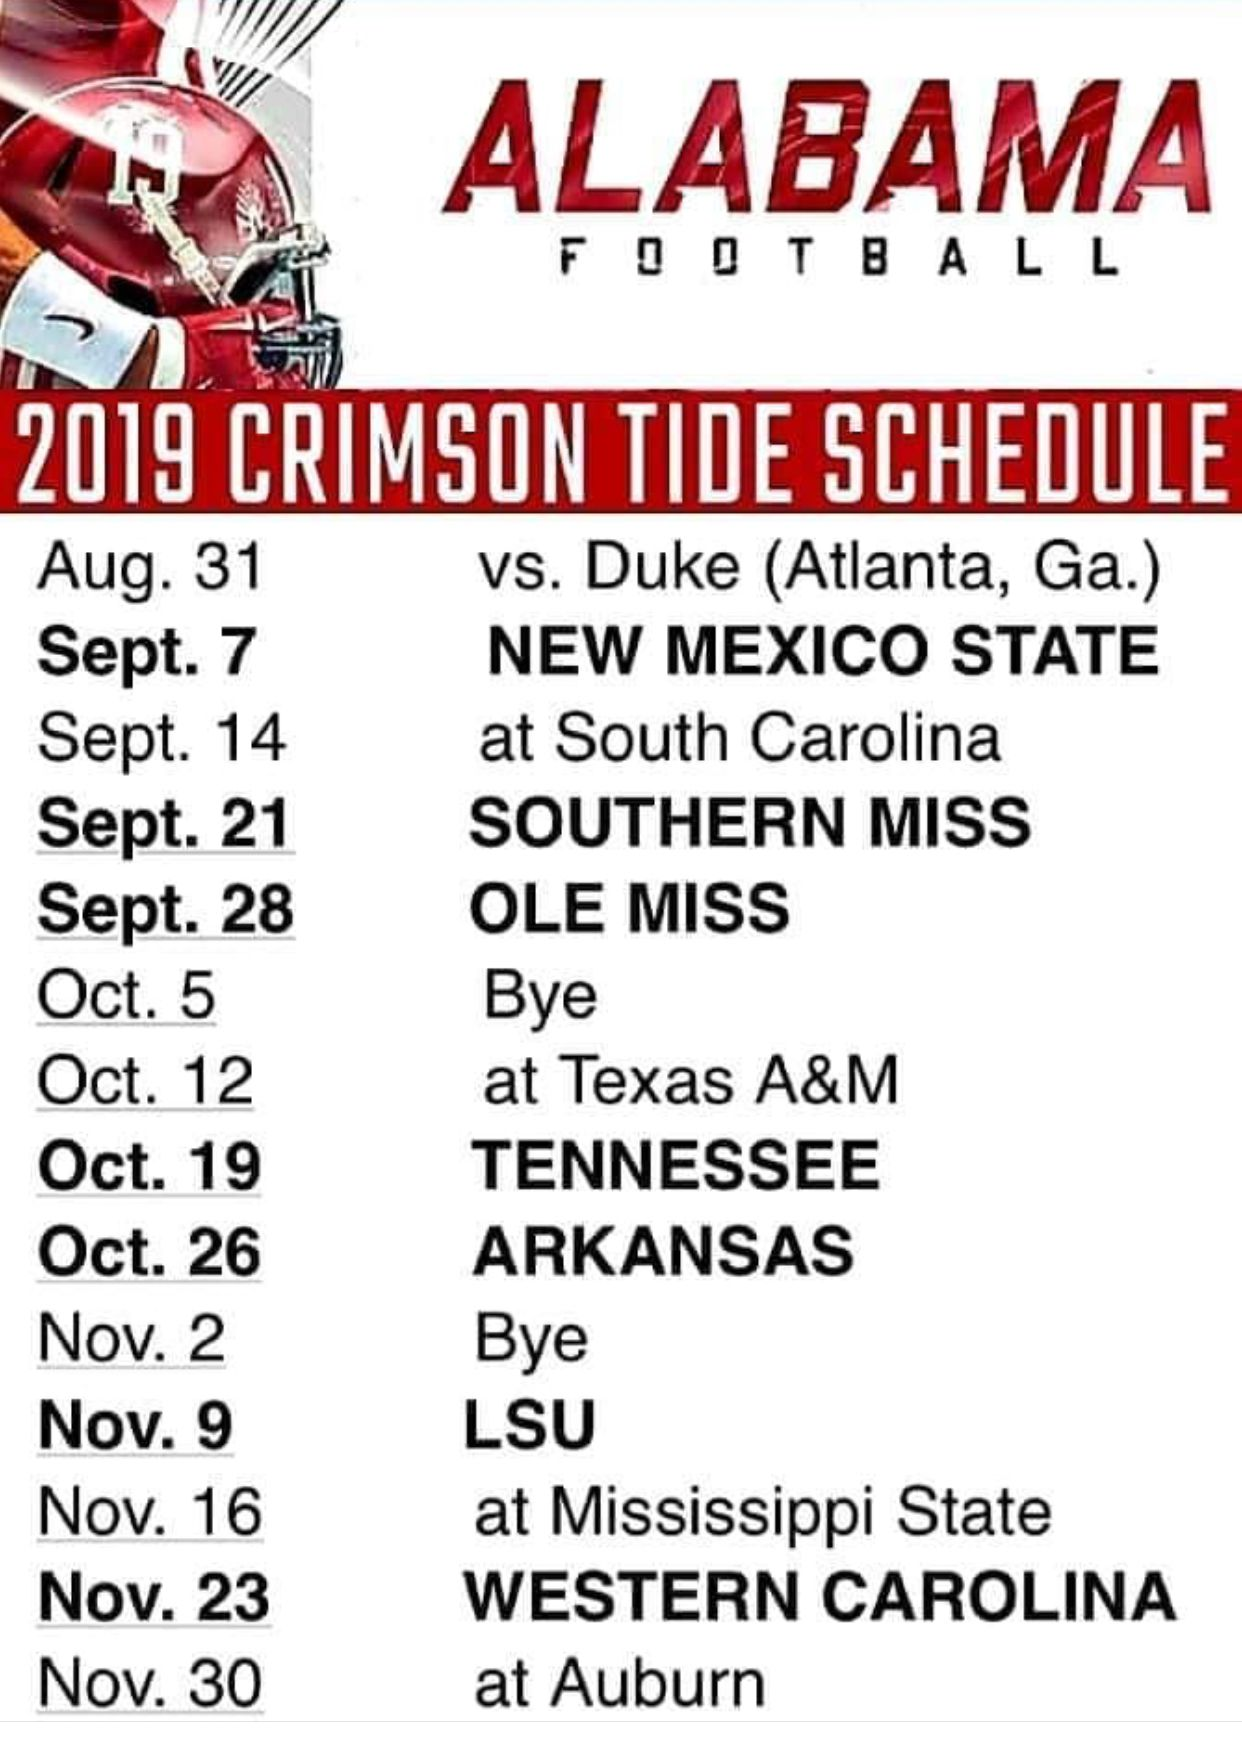 Utc Football Schedule 2020 2019 Crimson Tide football schedule | Alabama Football 2019 2020